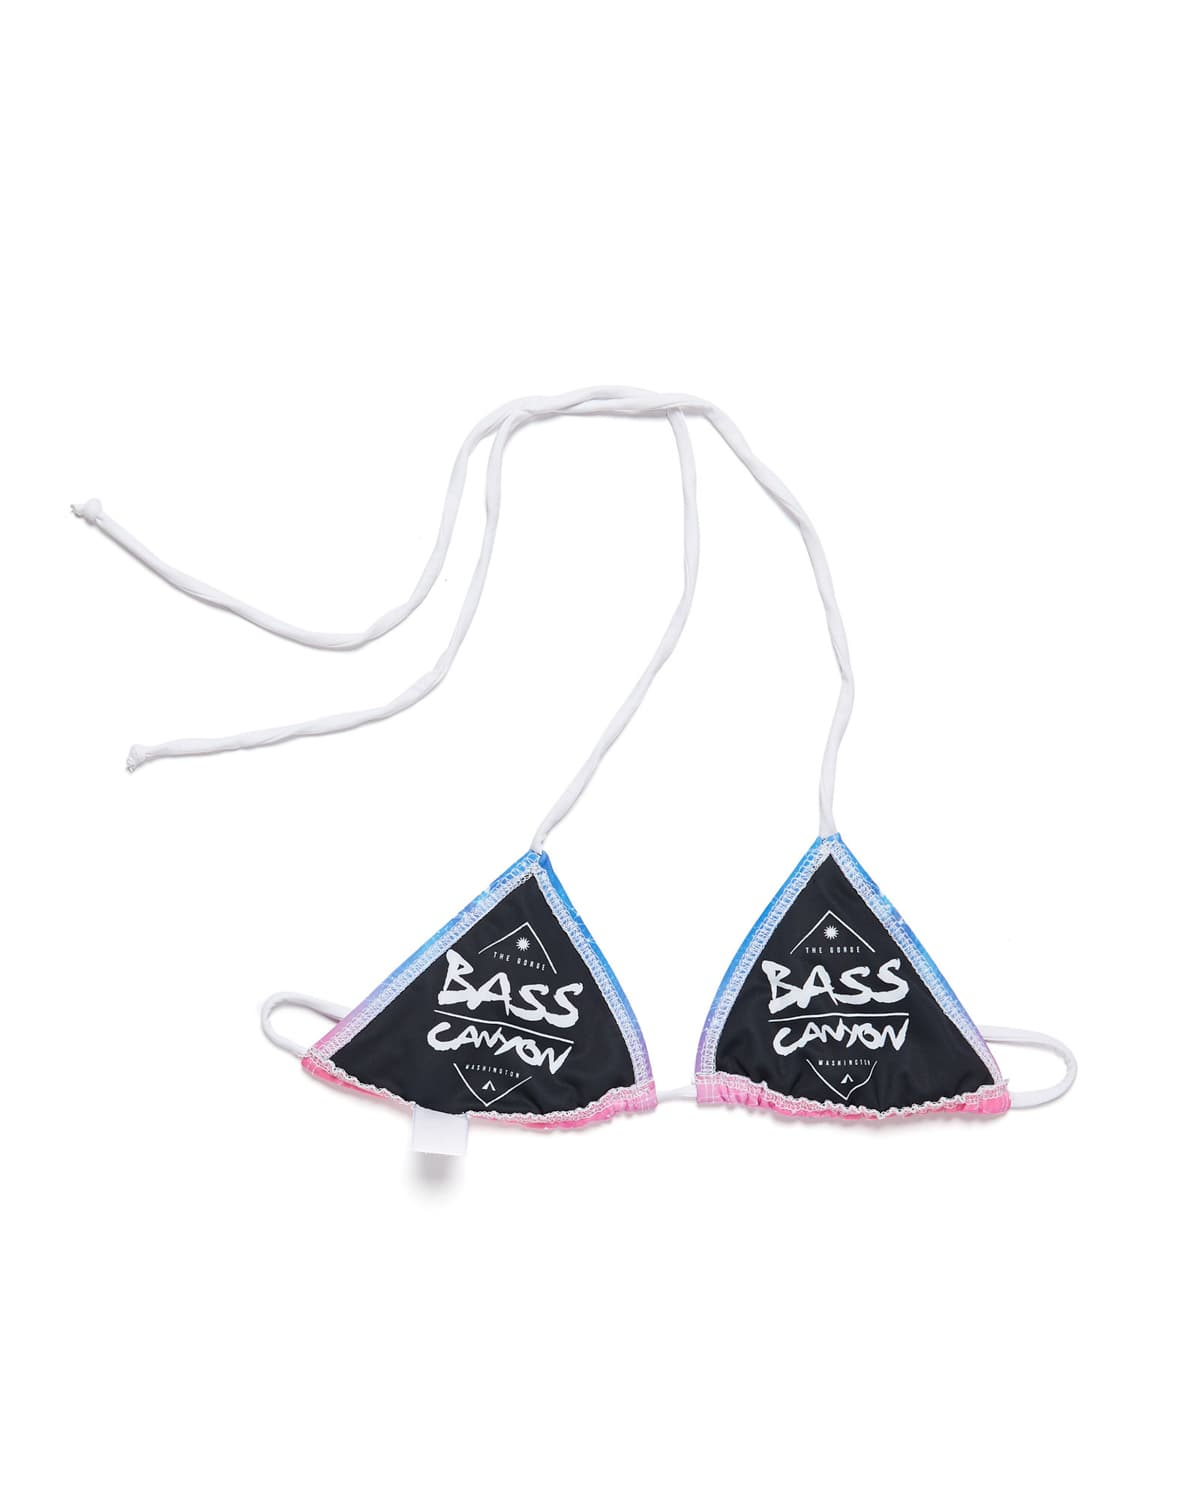 Official Bass Canyon Bikini Top - Pink/Blue